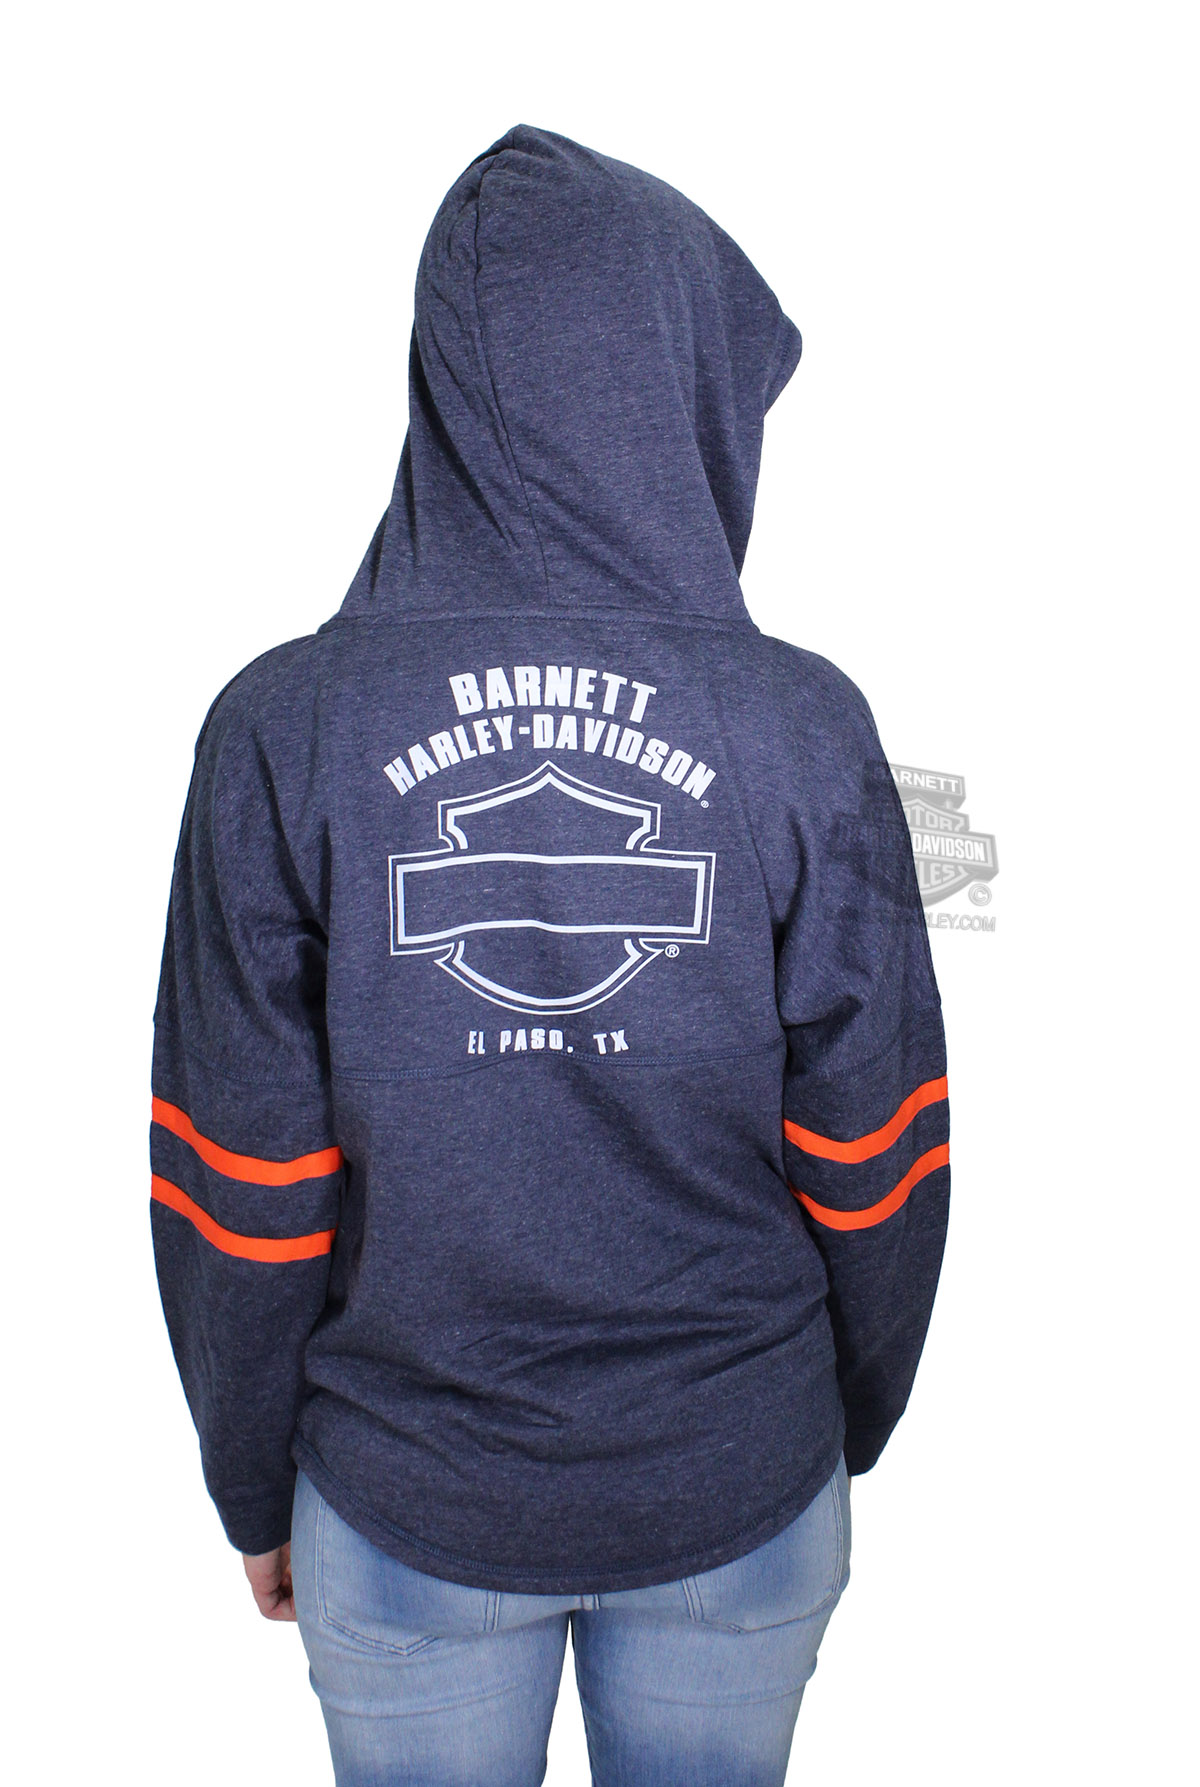 harley davidson womens cozy drop shoulder pullover navy. Black Bedroom Furniture Sets. Home Design Ideas